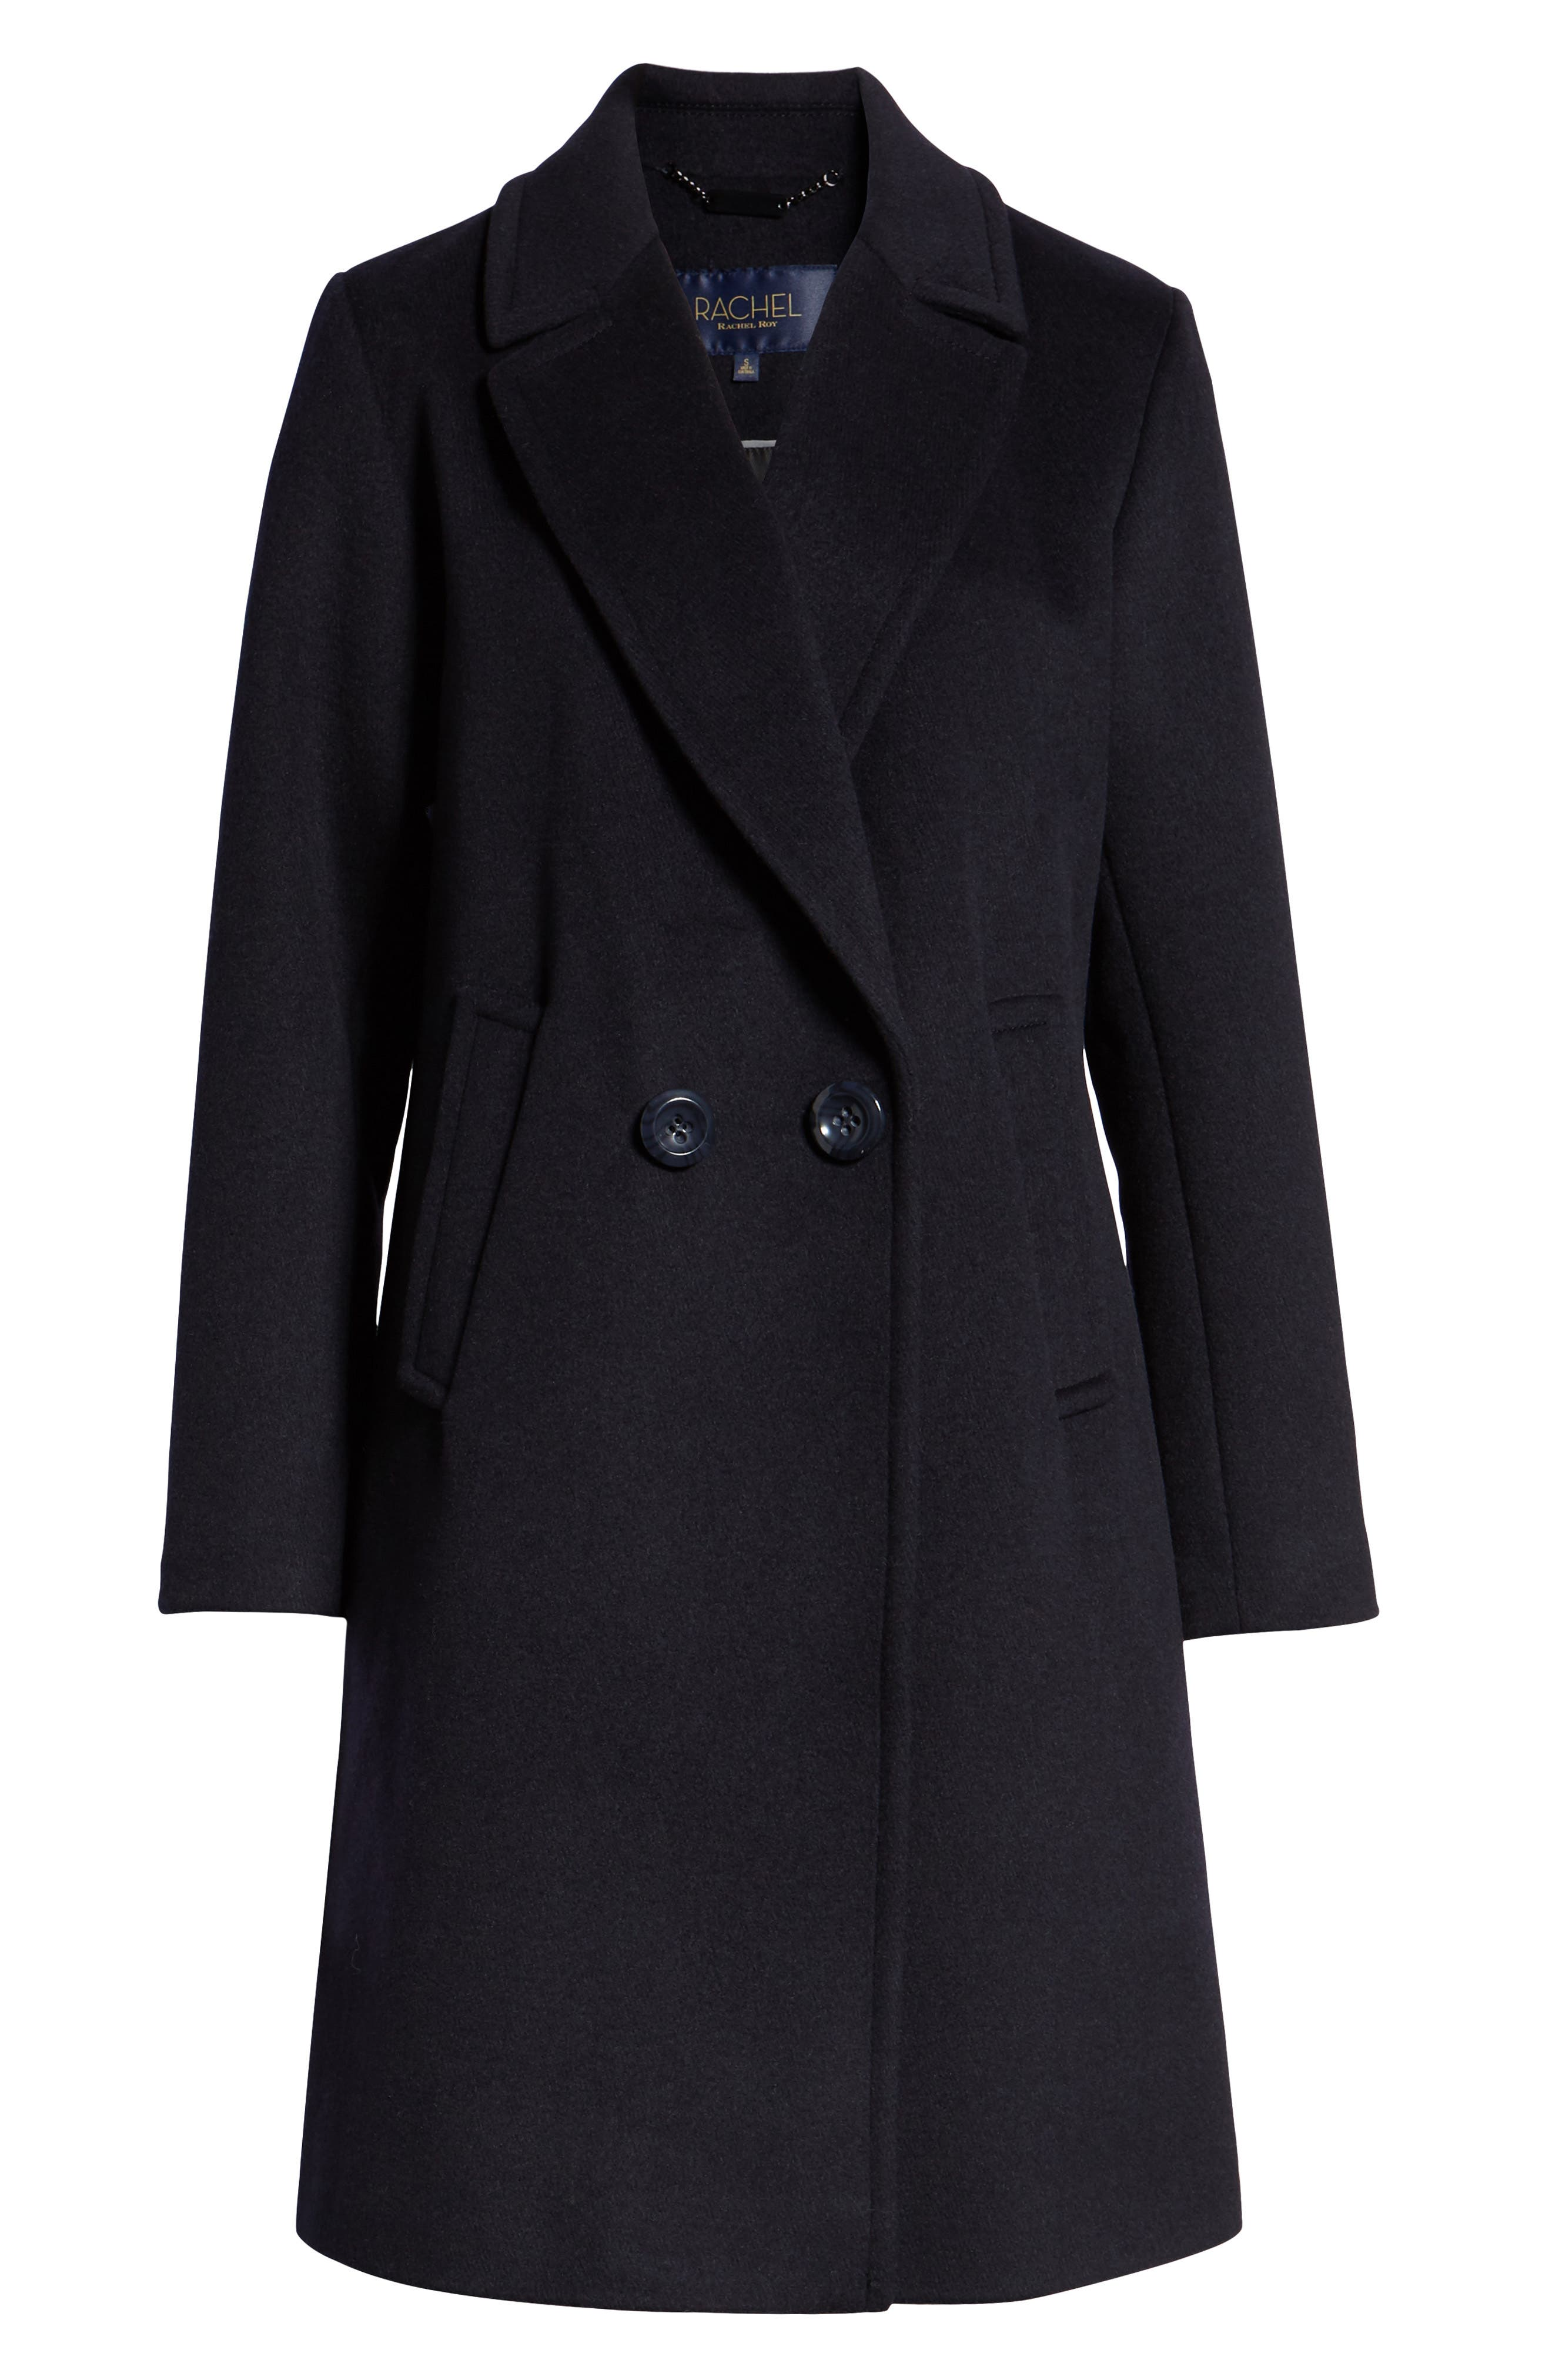 RACHEL RACHEL ROY, Double Breasted Wool Blend Coat, Alternate thumbnail 6, color, 410